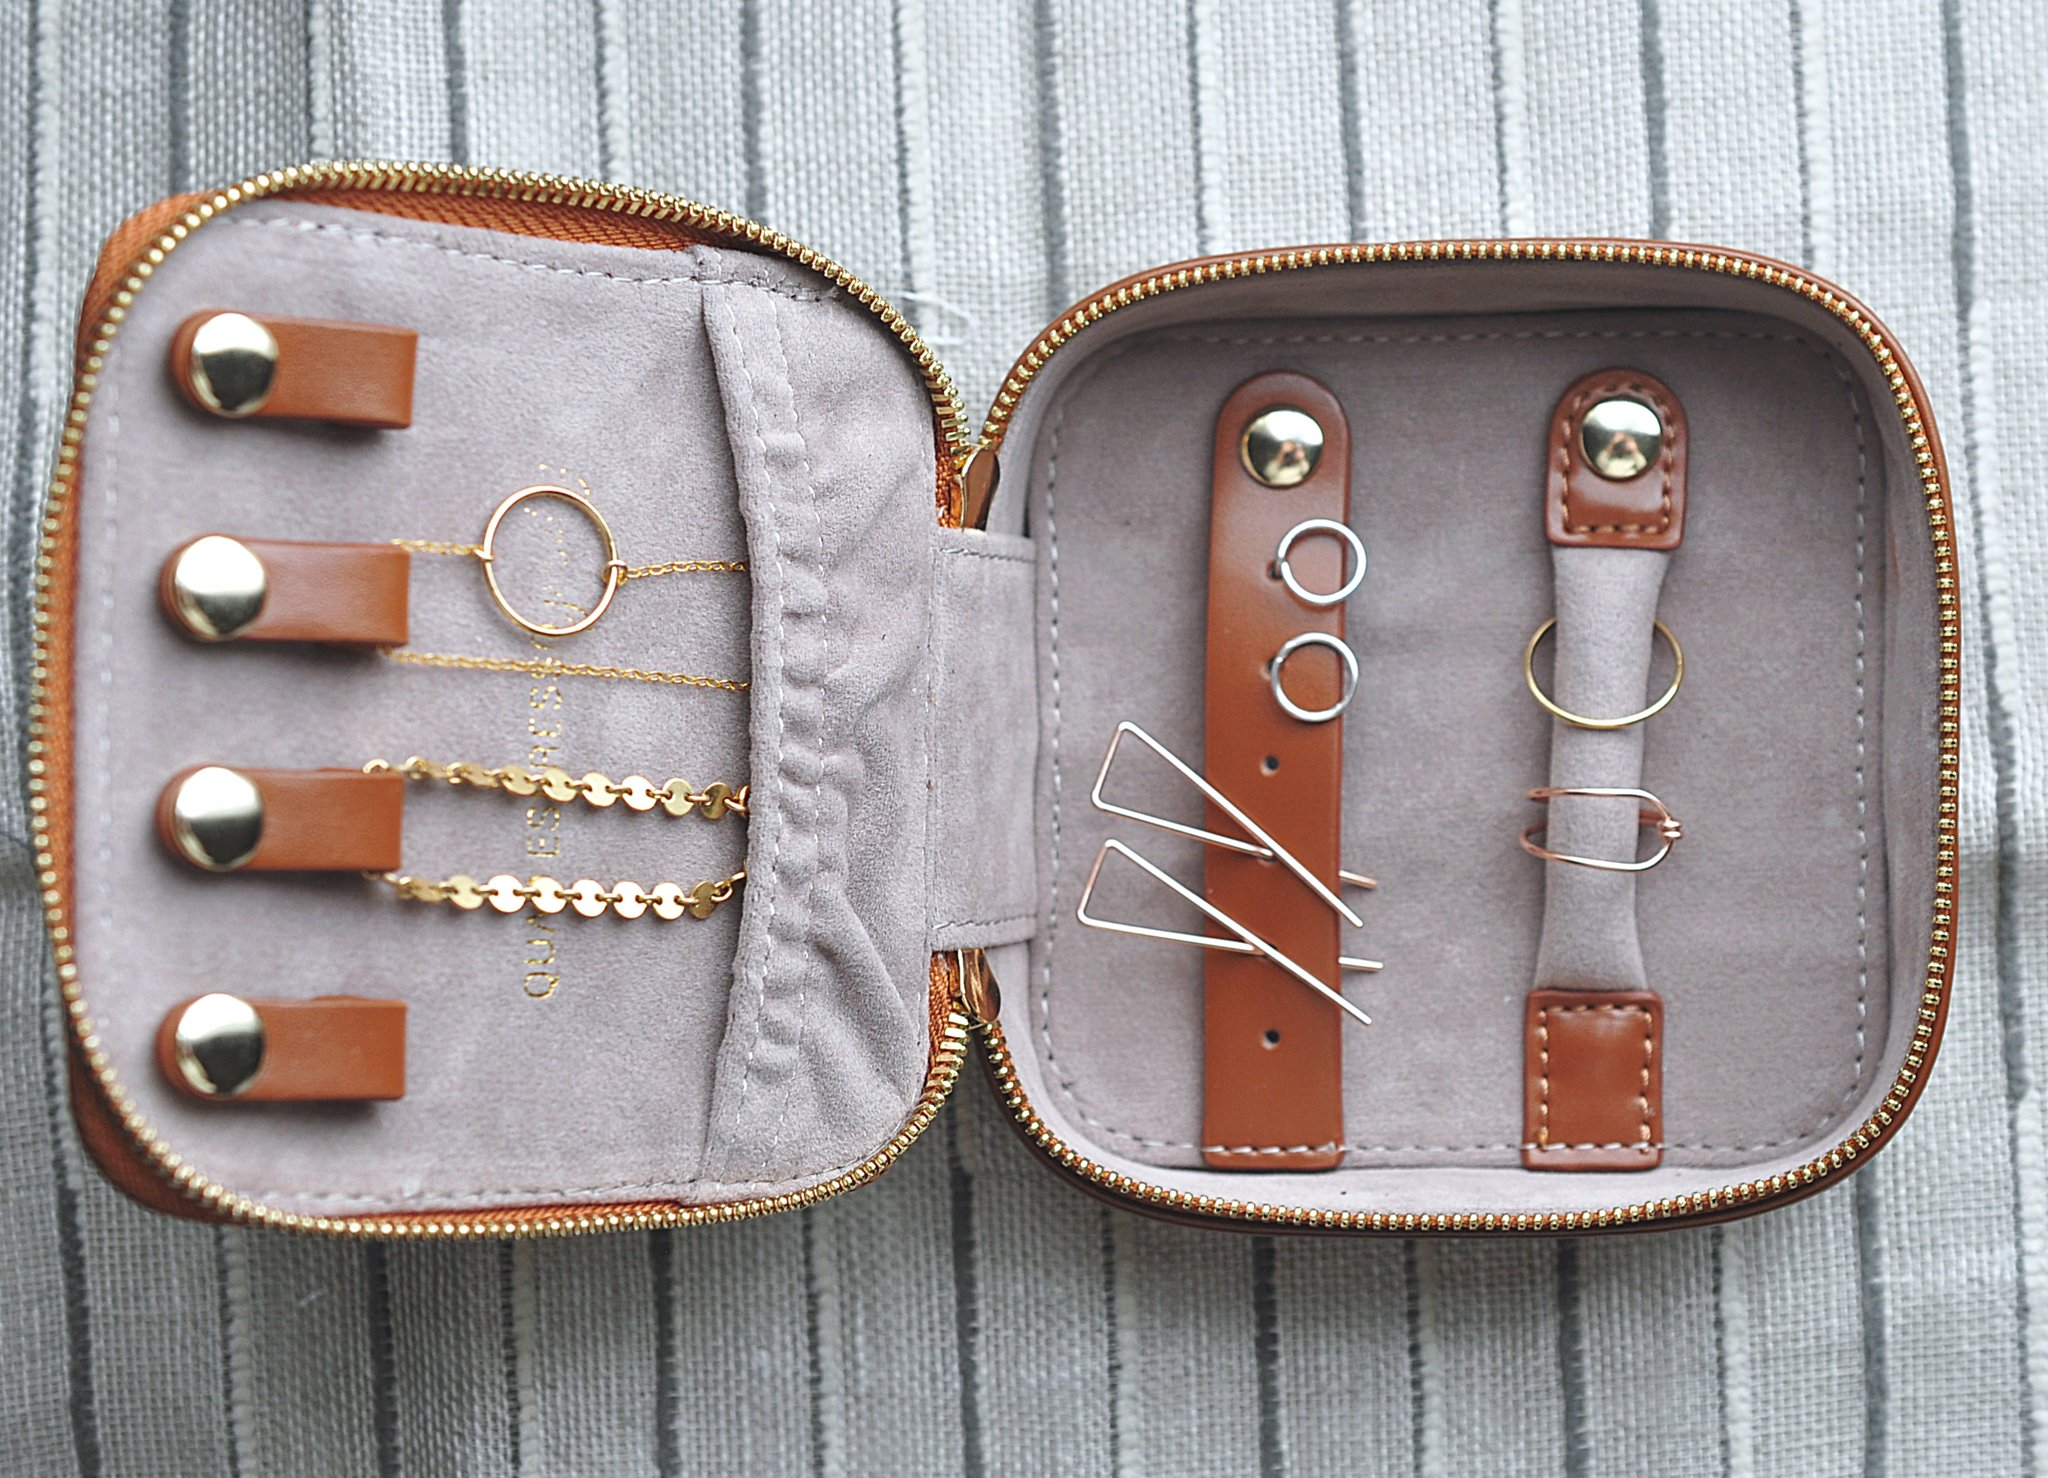 This last find is not an Etsy find but it's a Belle necessity for keeping your jewelry keepsakes safe. This case is perfect for travel. Store:  Quad Espresso Jewelry